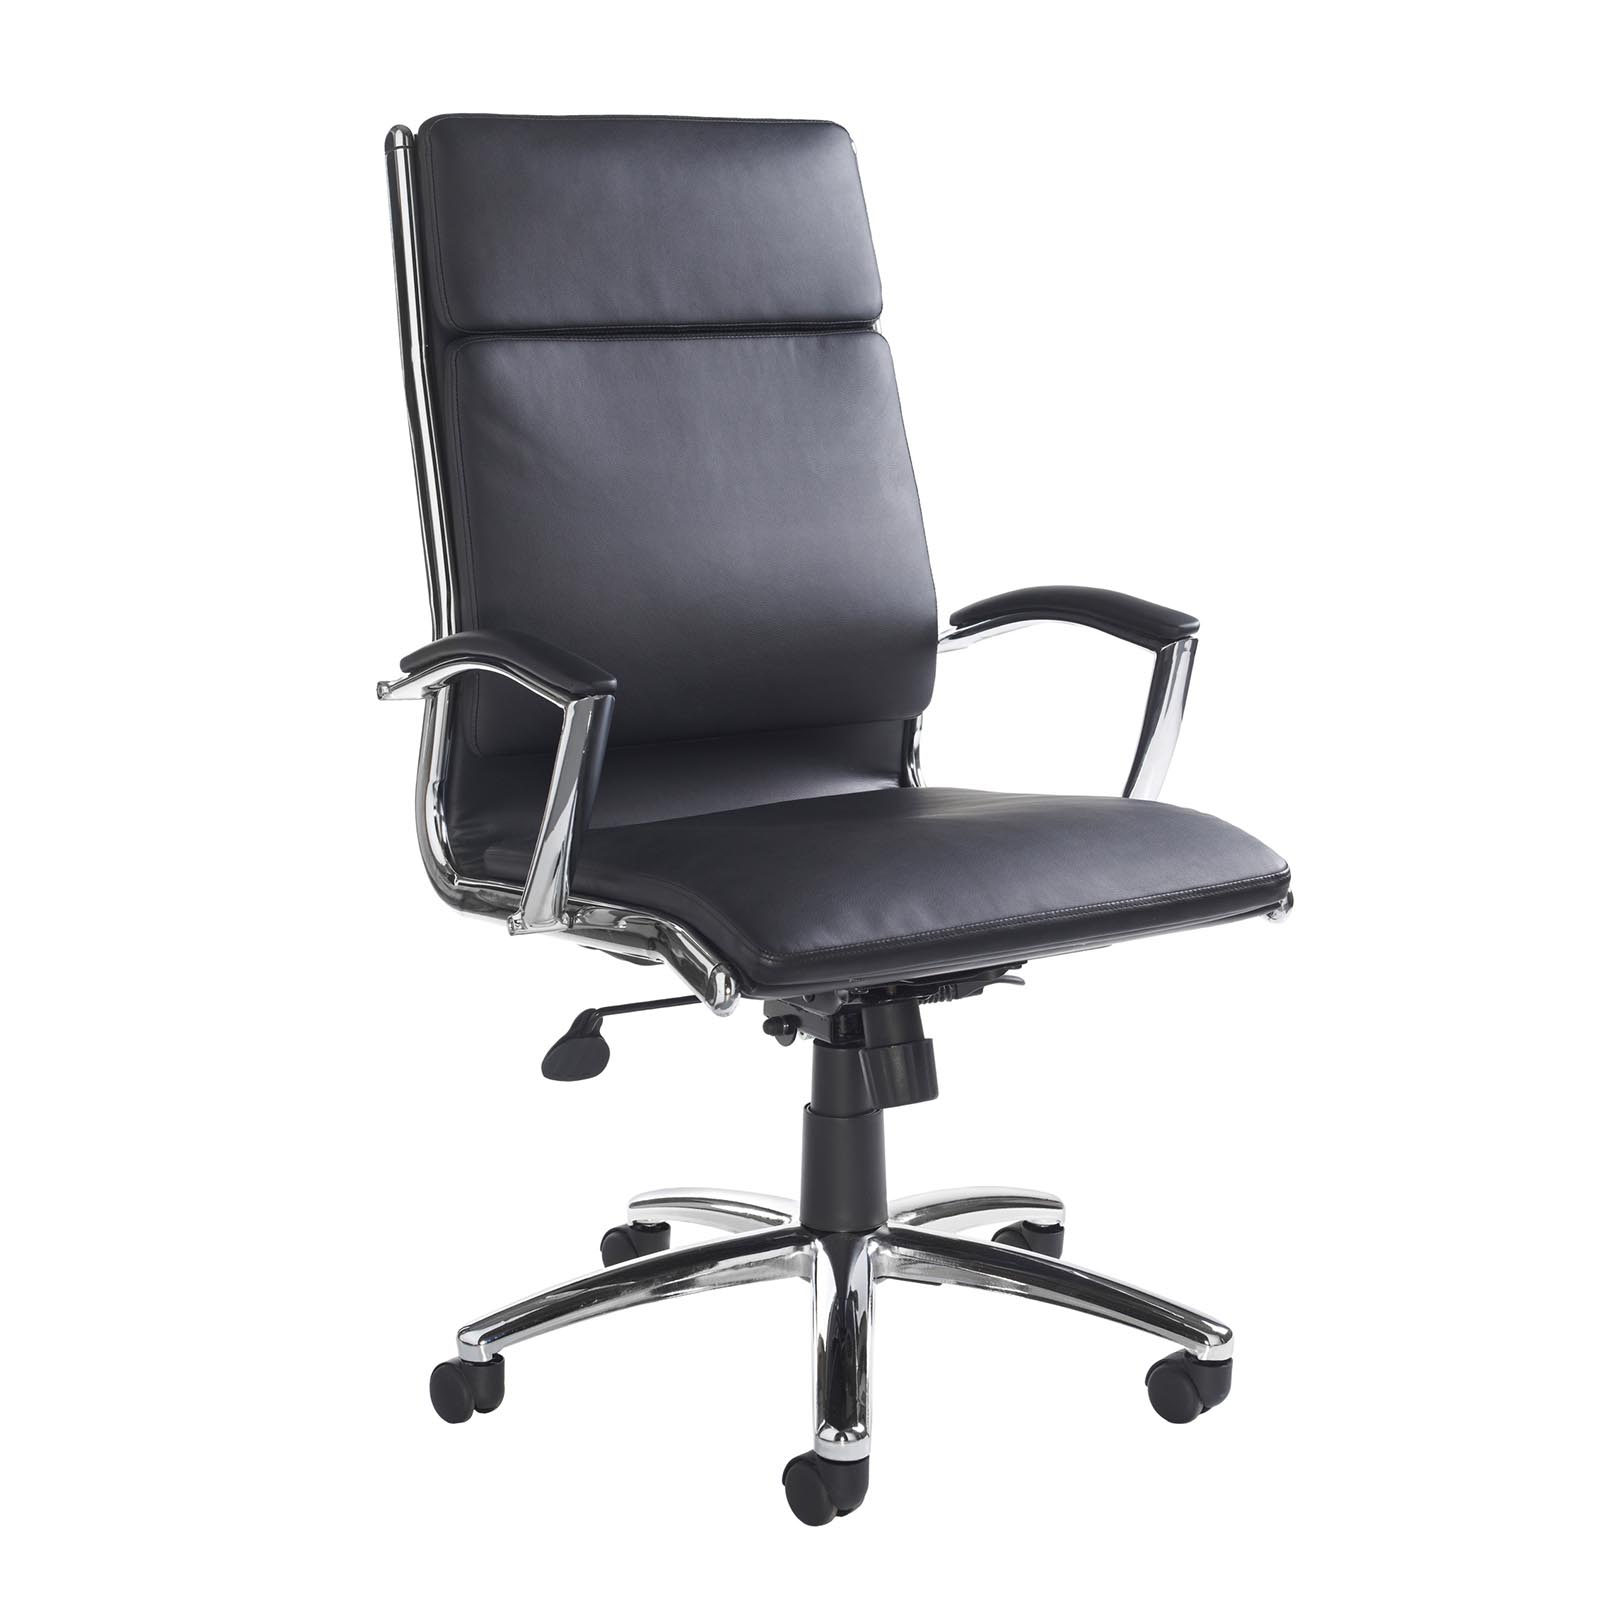 Executive Chairs Florence high back executive chair - black faux leather